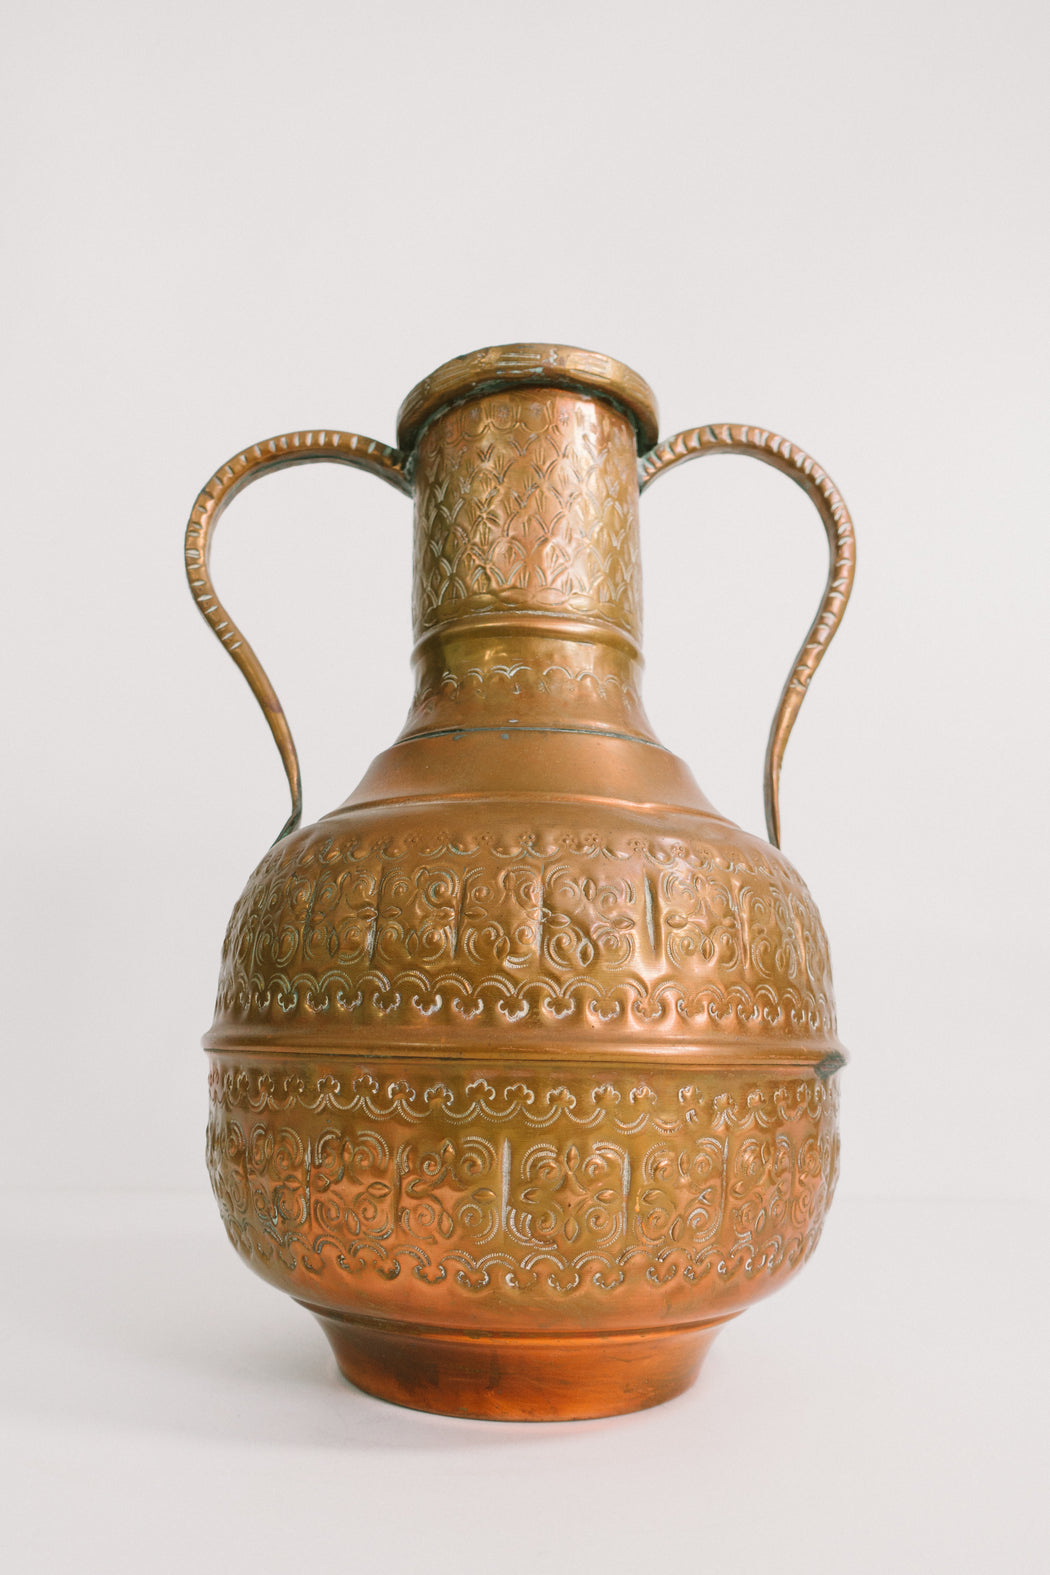 Vintage Copper Water Pitcher | Middle Eastern Decorative Metalware